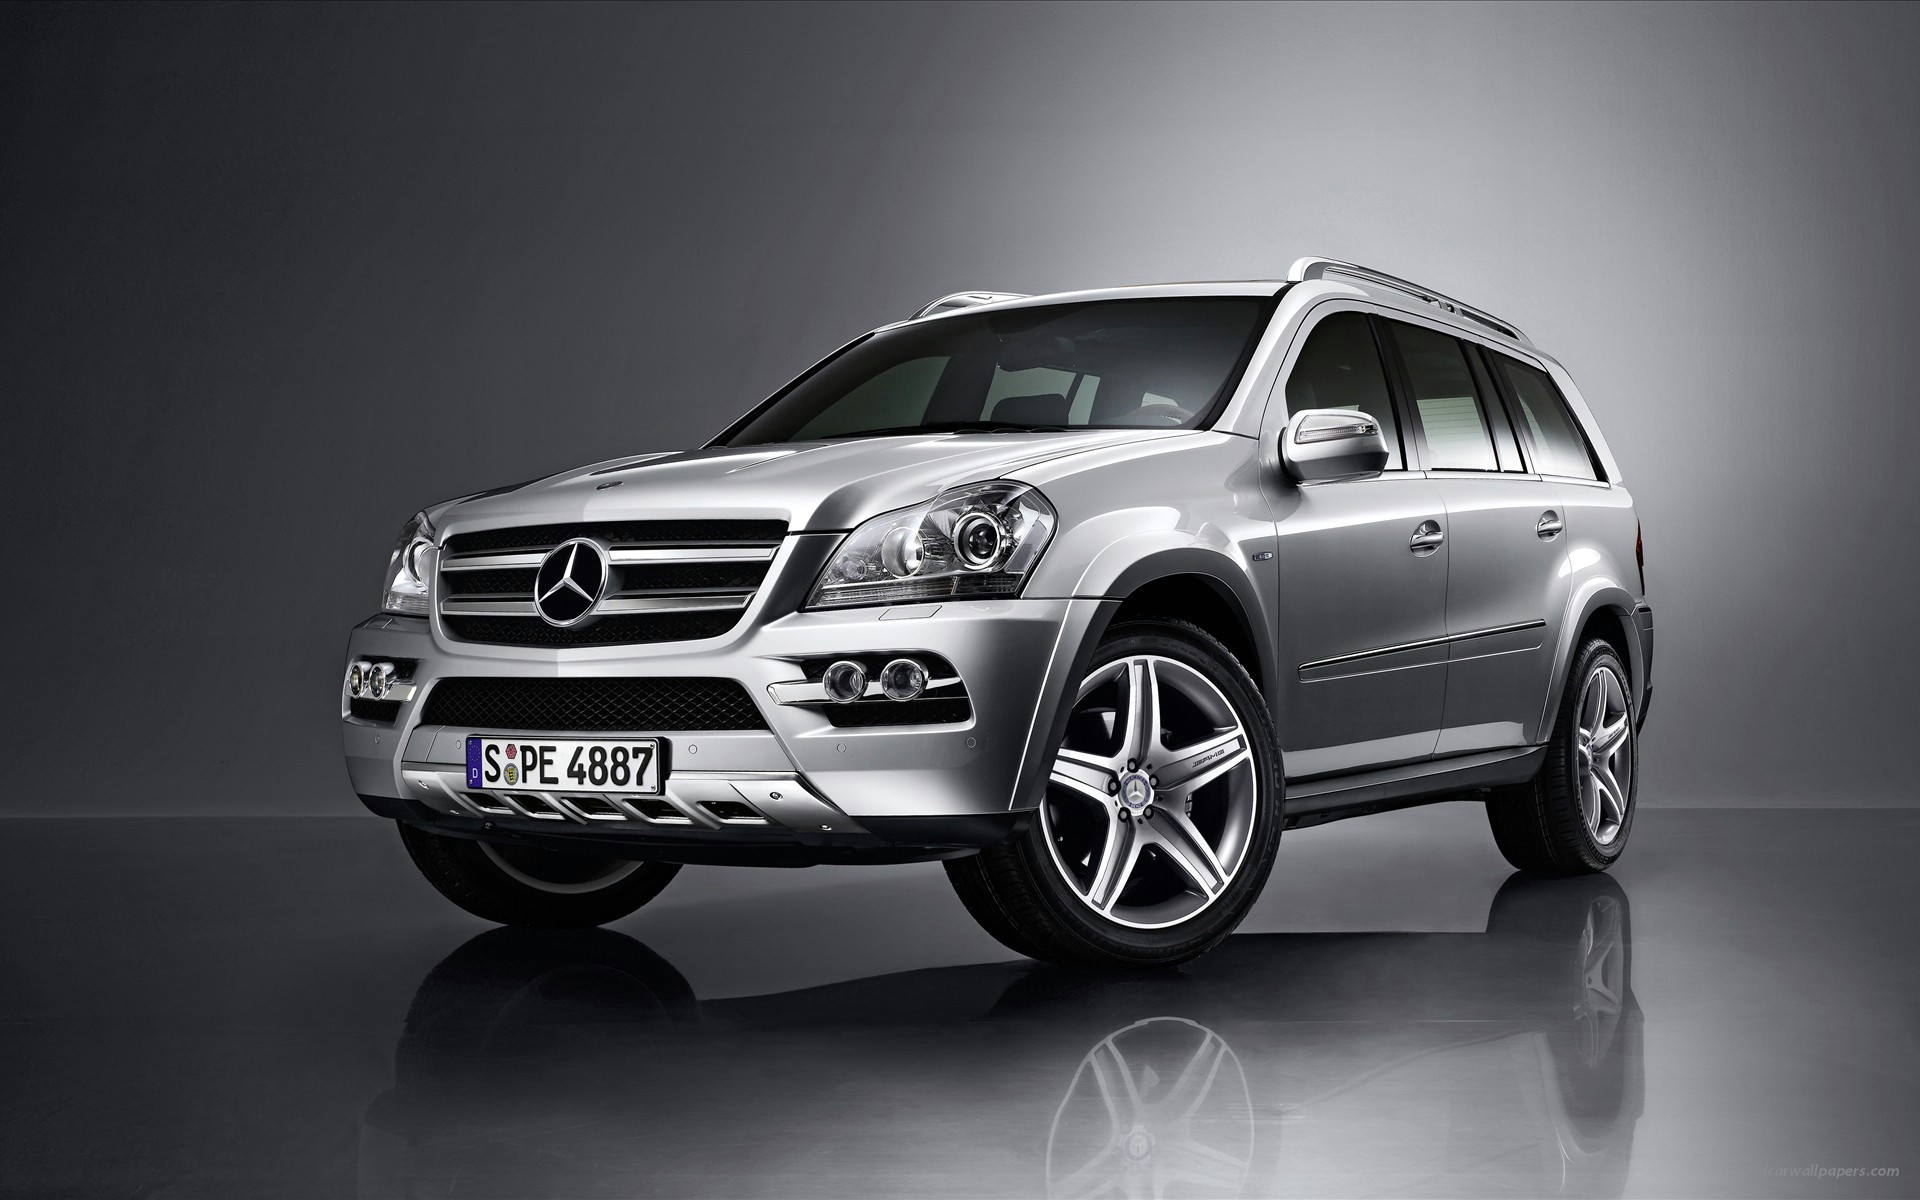 Mercedes Benz SUV wide Unlimited High Resolution Desktop Backgrounds